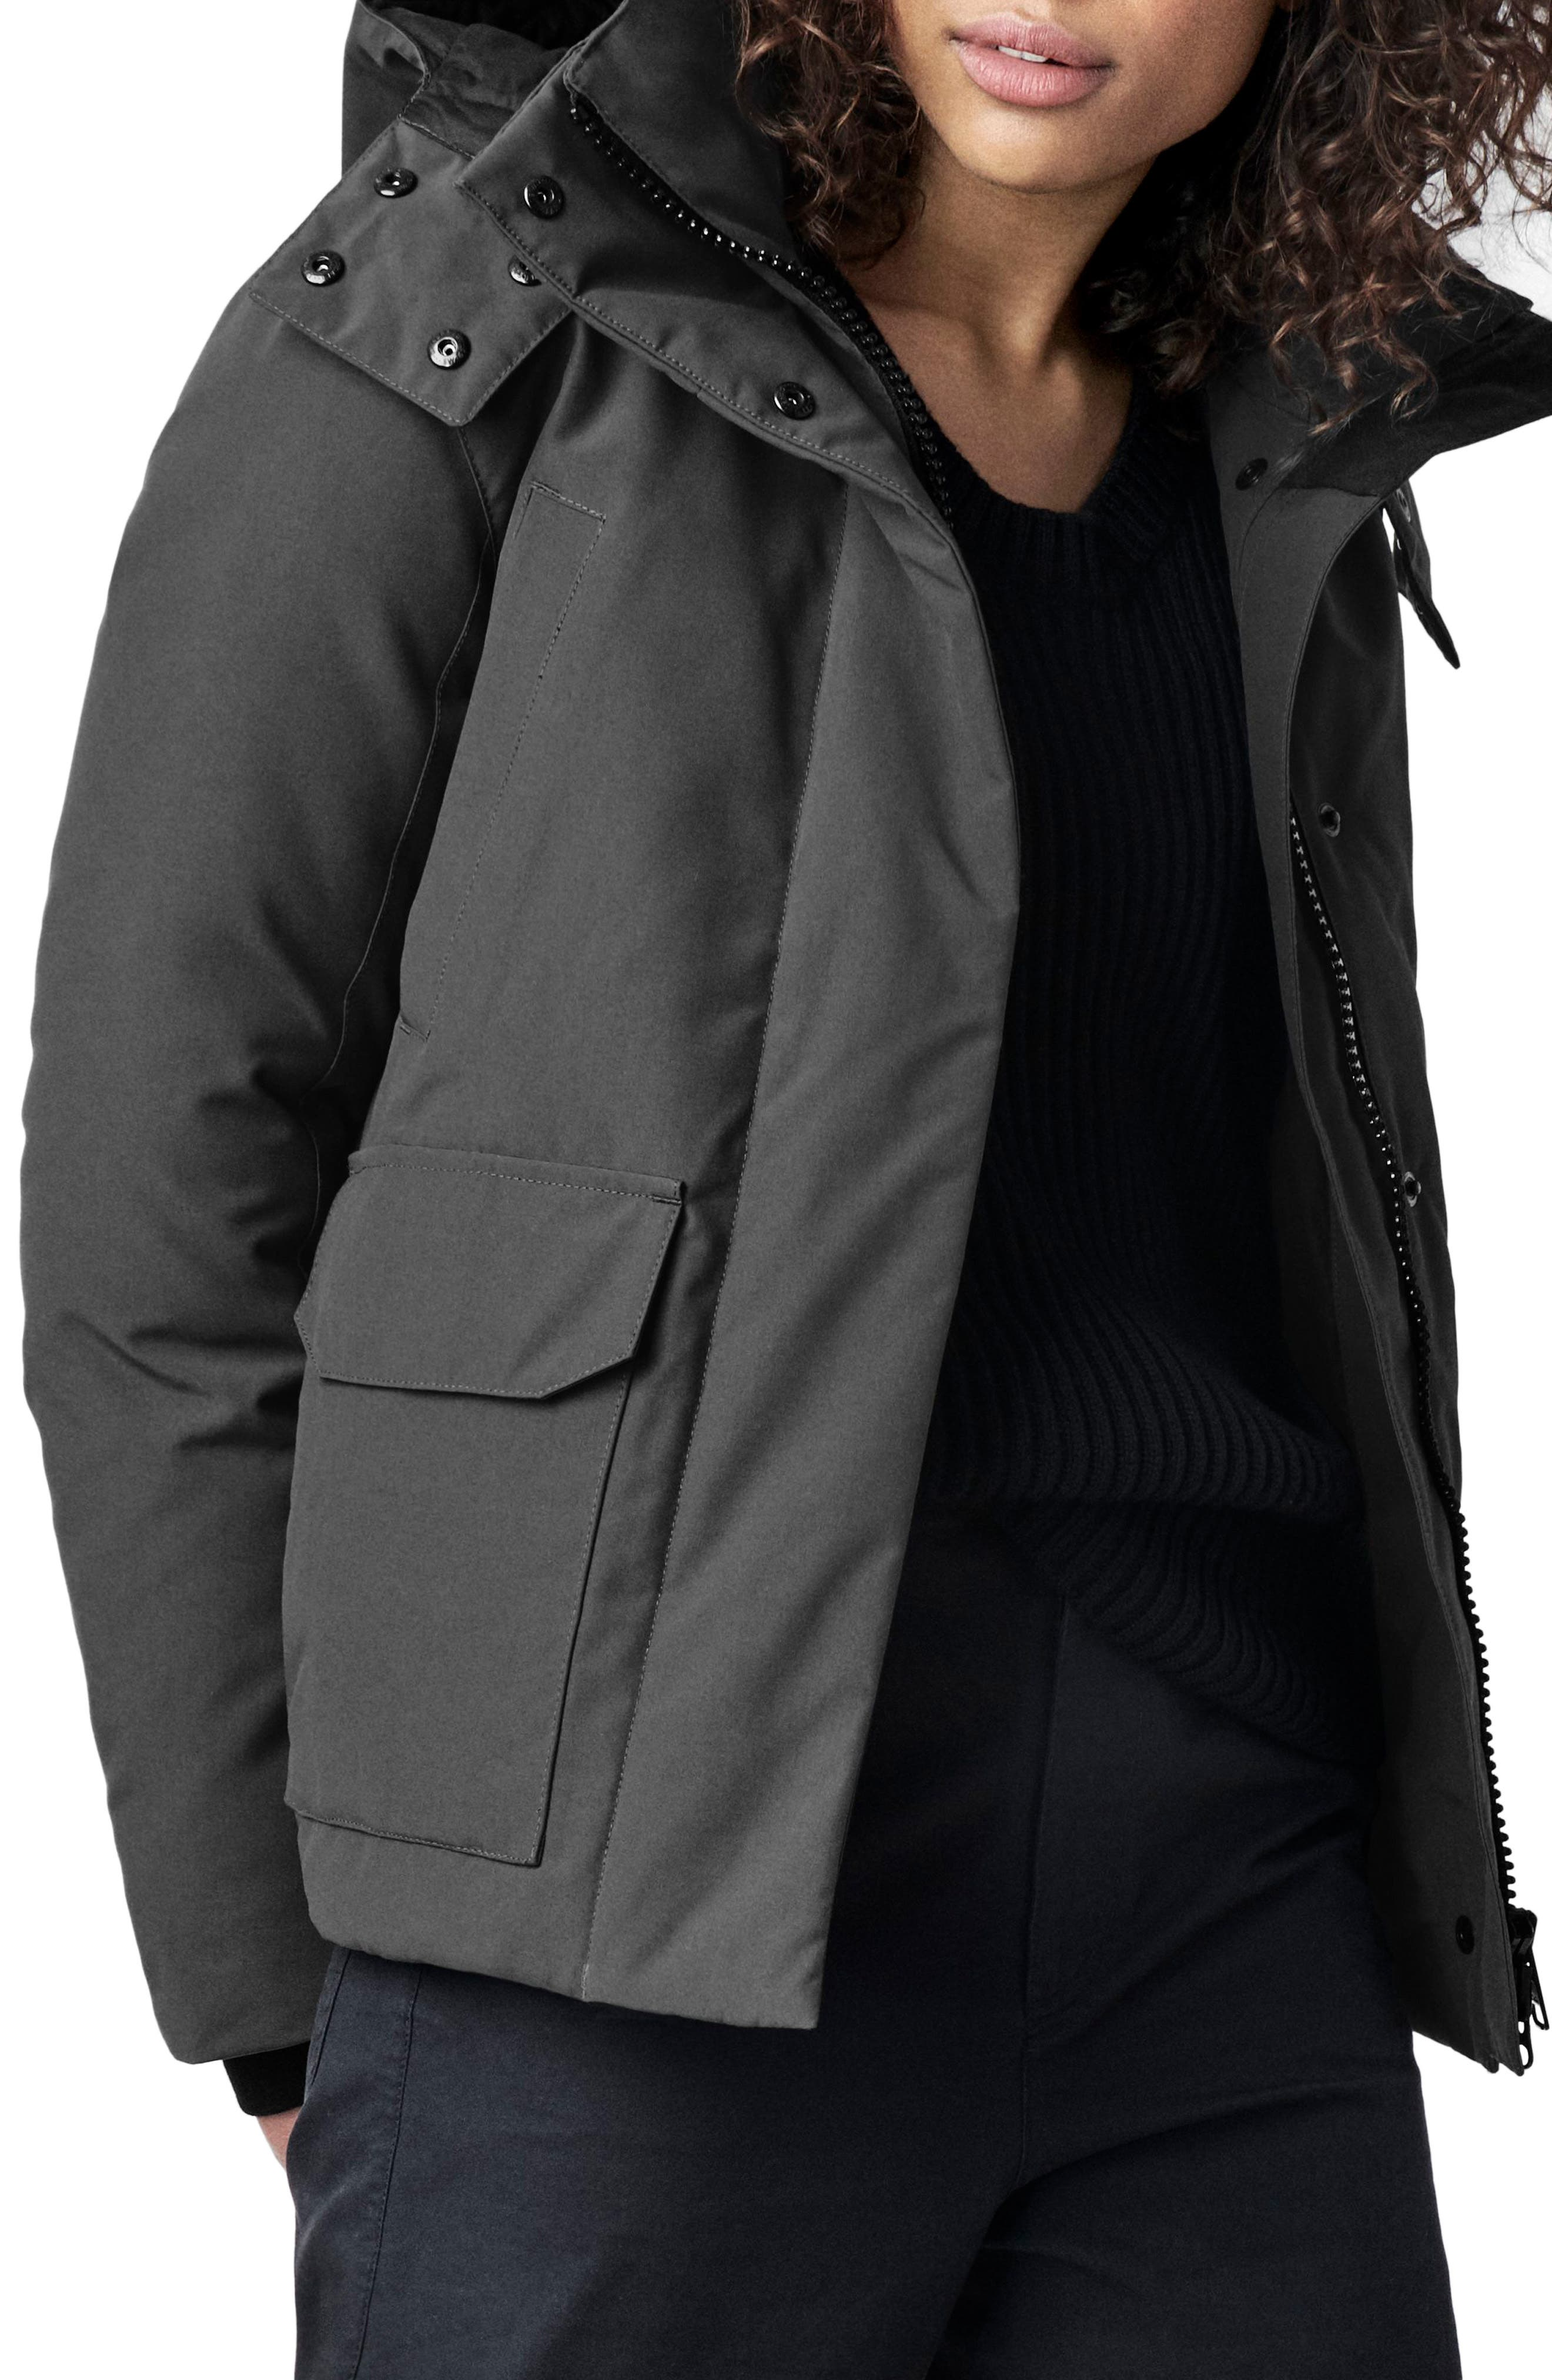 Canada Goose Blakely Water Resistant 625 Fill Power Down Parka, (2-4) - Grey